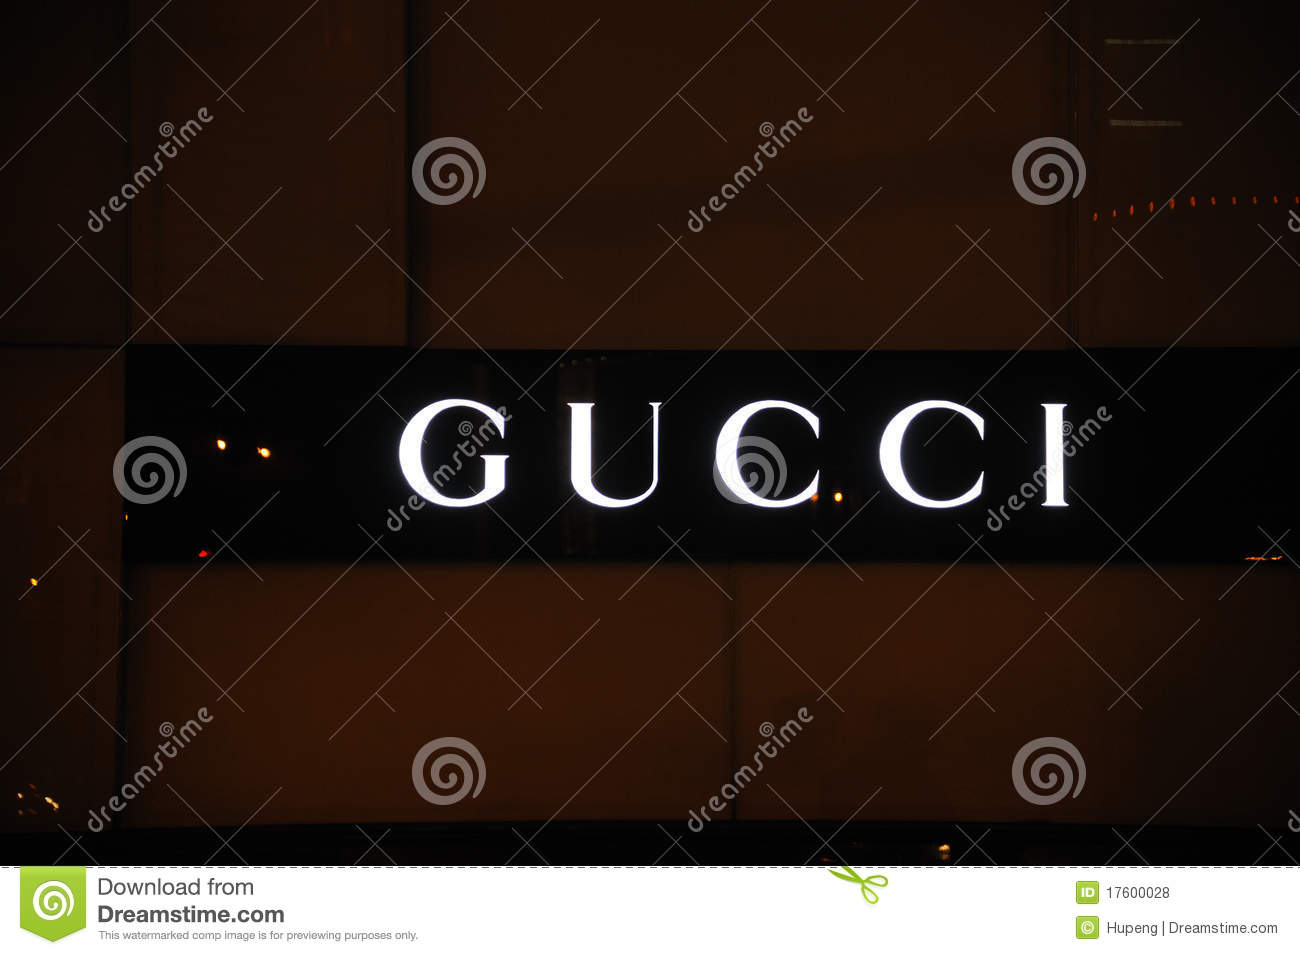 1f9f193afe3 Gucci logo editorial stock photo. Image of display